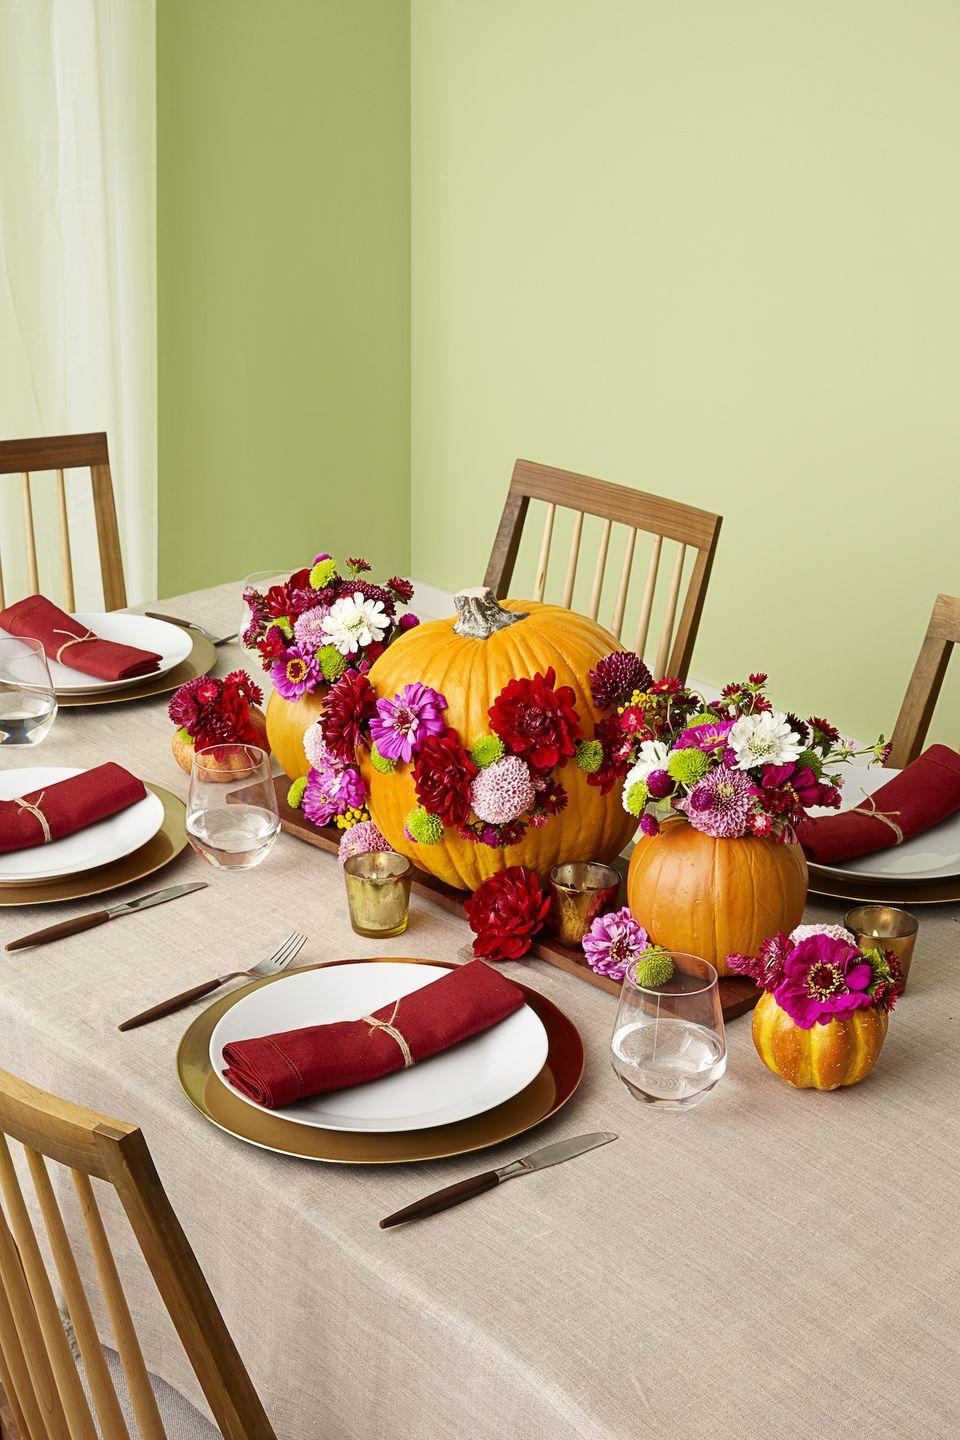 <p>Hot glue vibrant faux flowers on a bright orange pumpkin to add a wow-factor to your table. You can add smaller pumpkin vases to complete your look. </p>